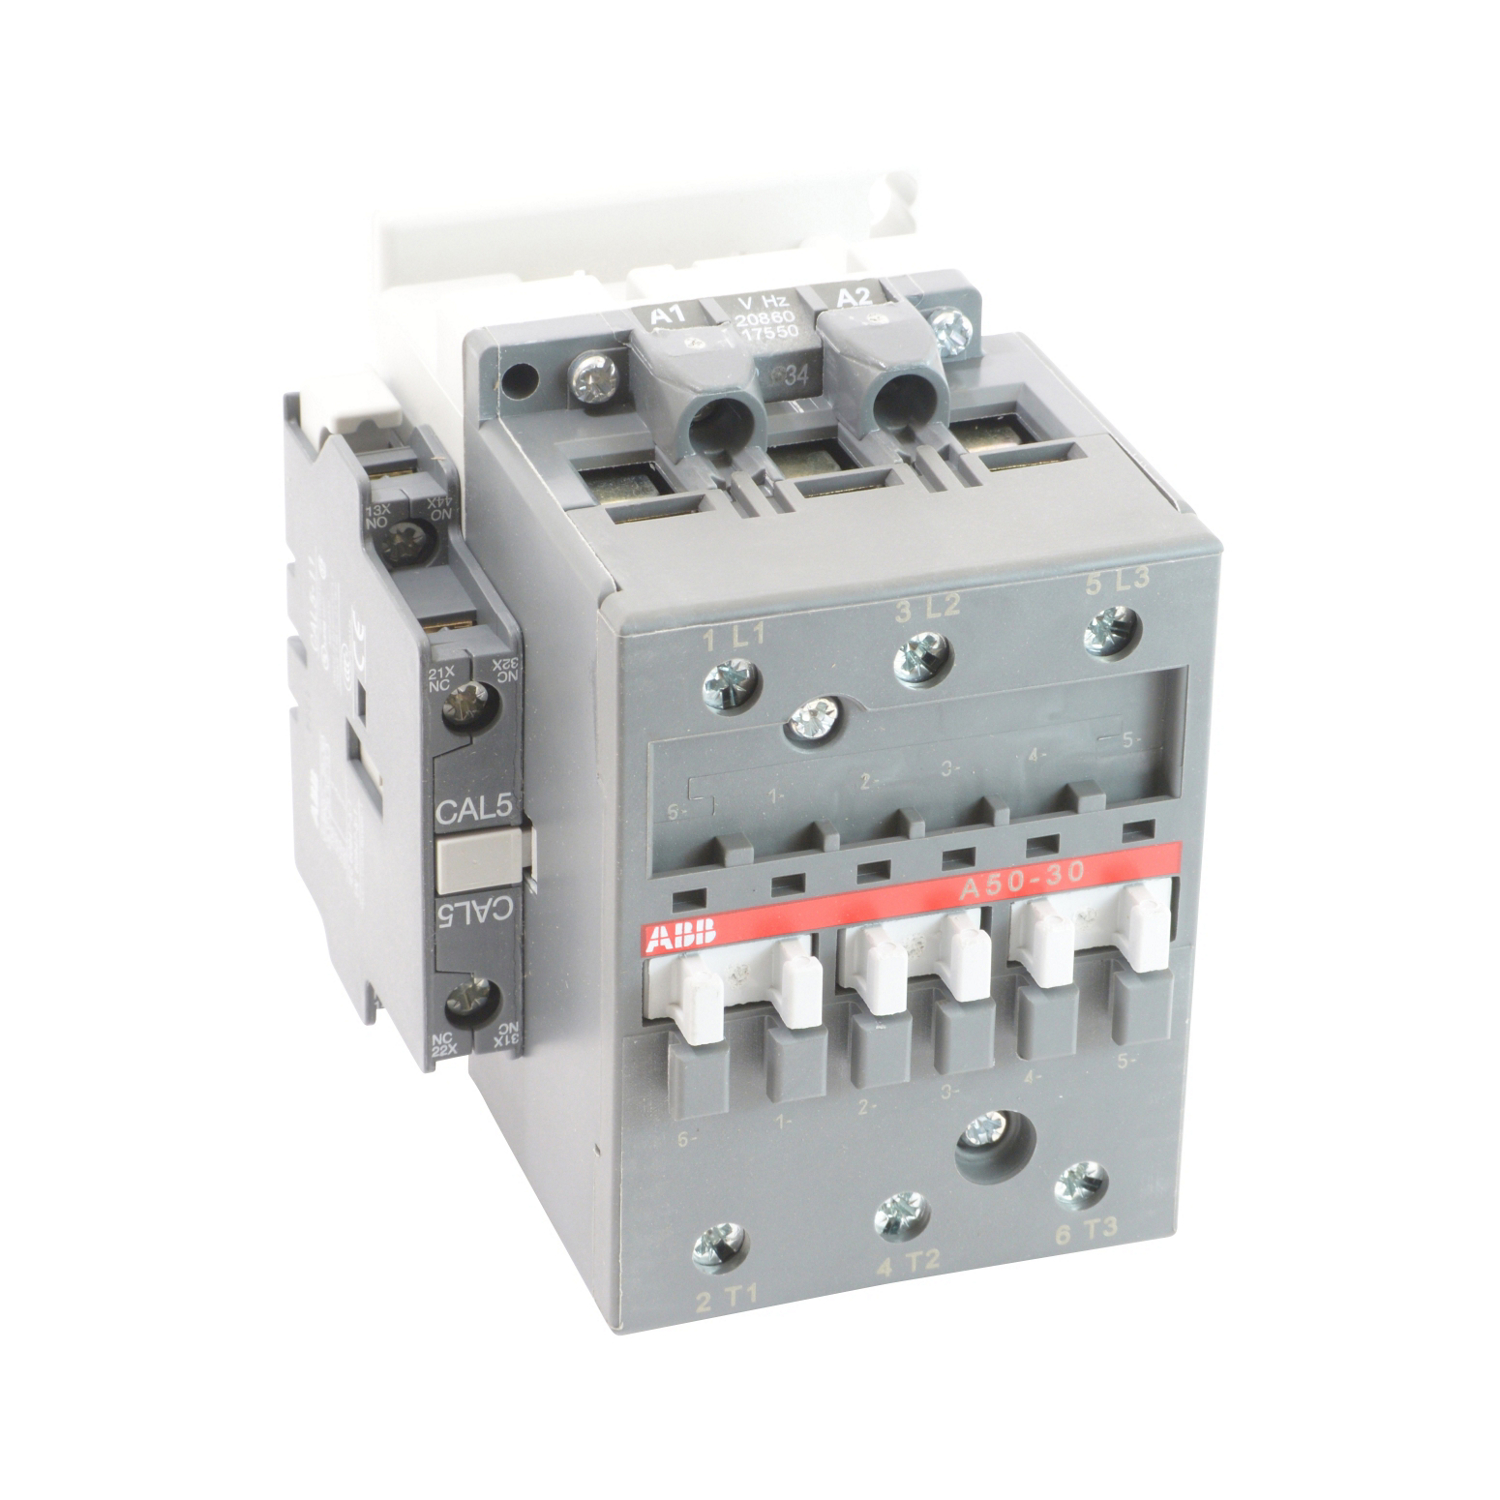 3 pole, 55 amp, non-reversing across the line contactor with 208V AC